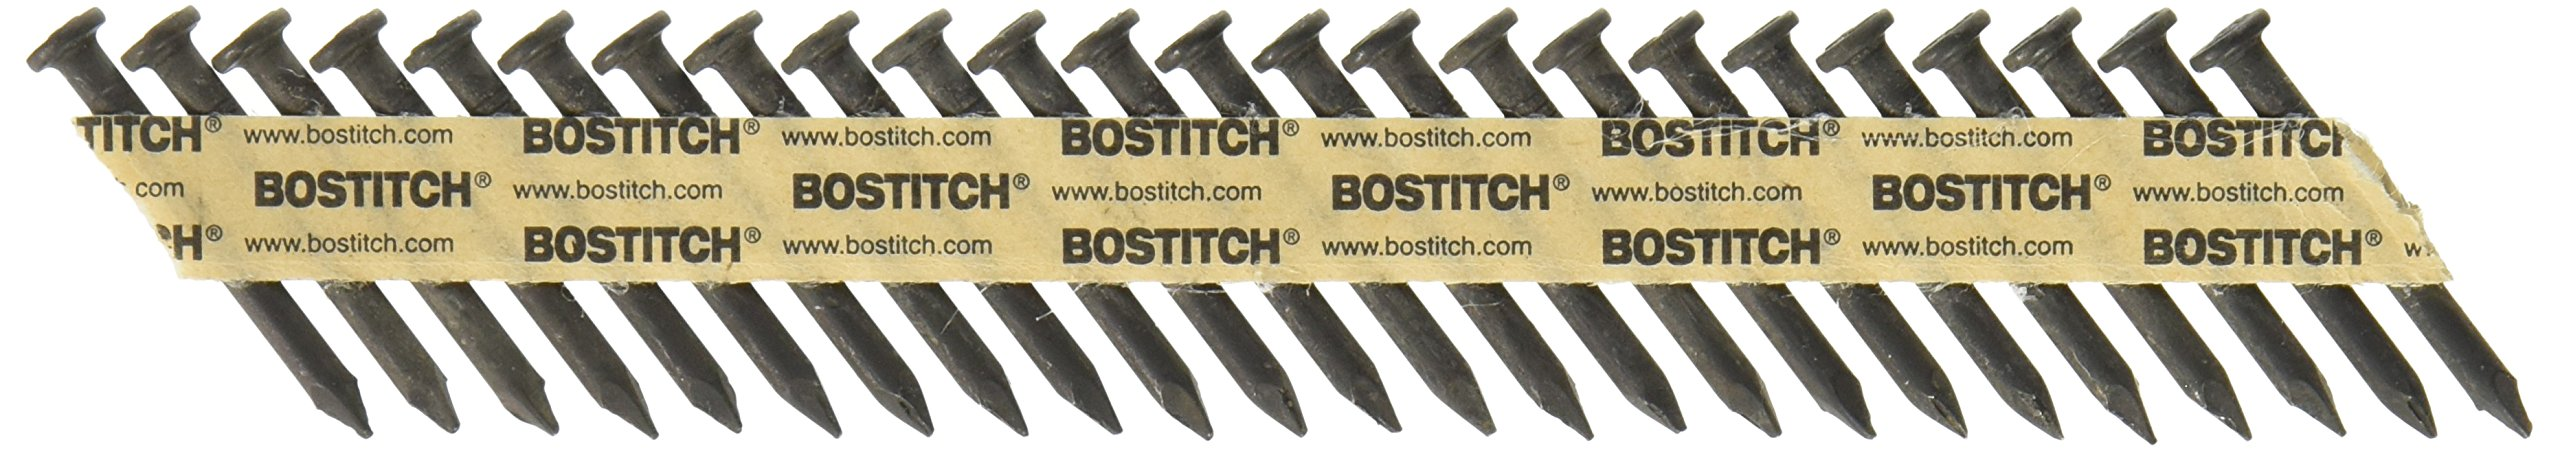 BOSTITCH PT-MC14815-1M 1 1/2-Inch x .148 Paper Tape Collated Metal Connector Nails (1,000 per Box) by BOSTITCH